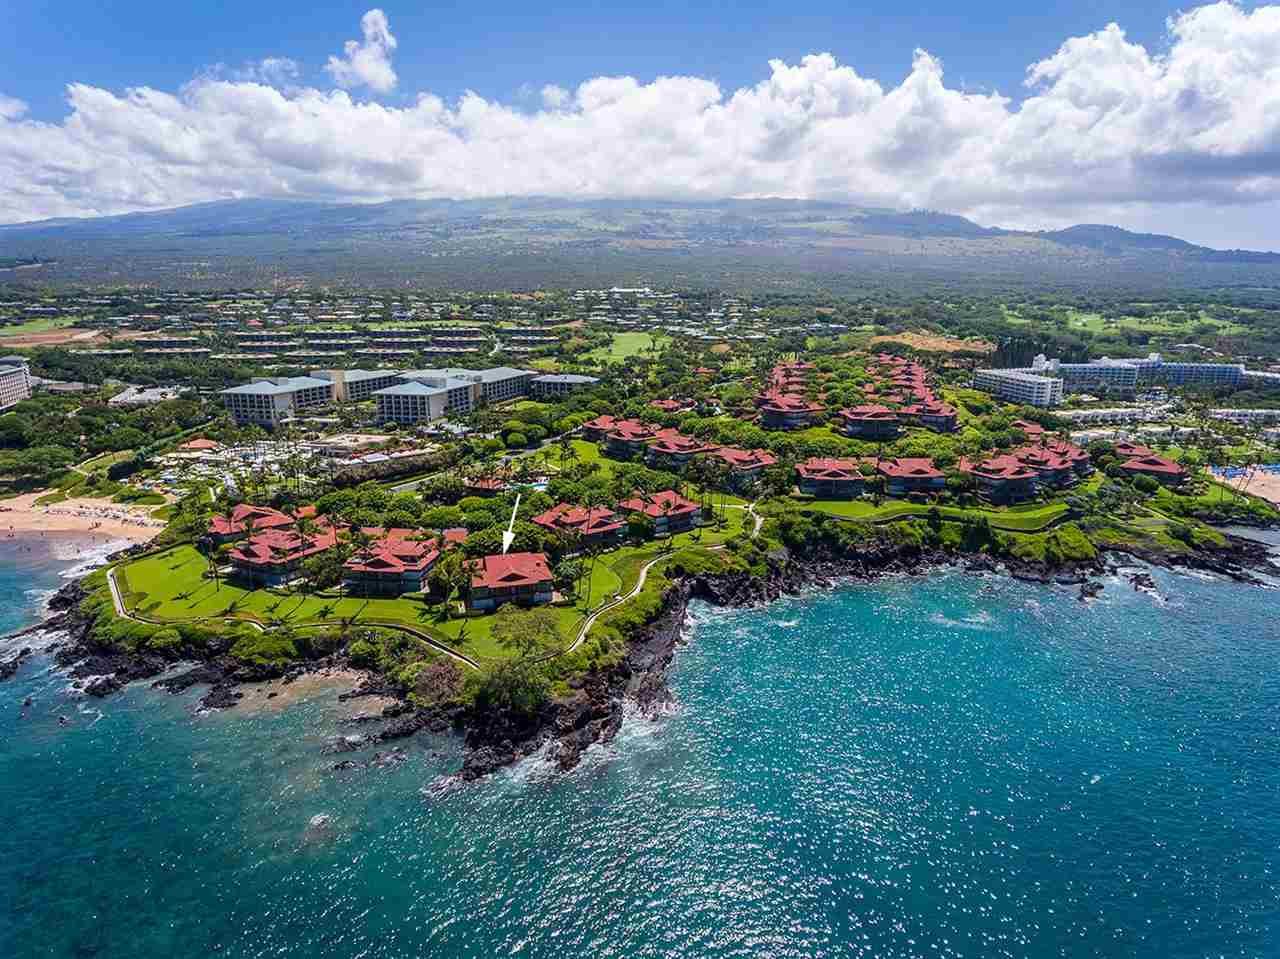 Wailea Point 402 is the premium unit in the incomparable location at Wailea Point as it is literally 'The Point' of Wailea Point. Built by the original Developer for himself it has only been available for sale once previously since 1986.